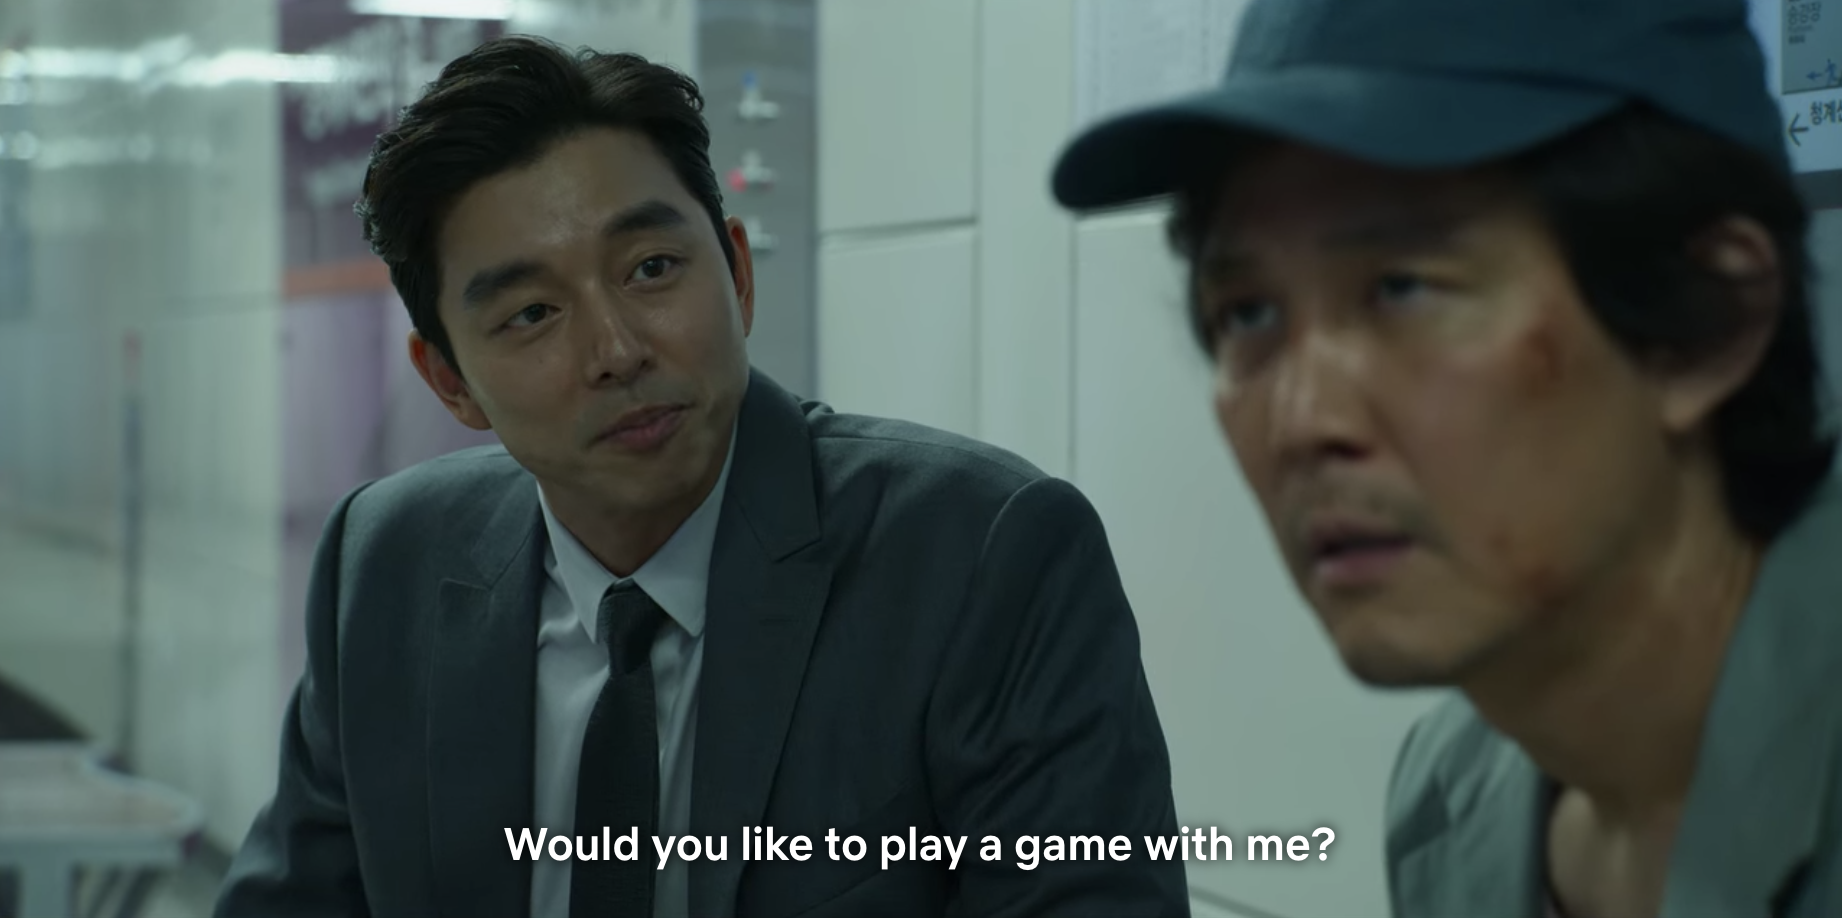 A man asking Gi-hun if he wants to play a game